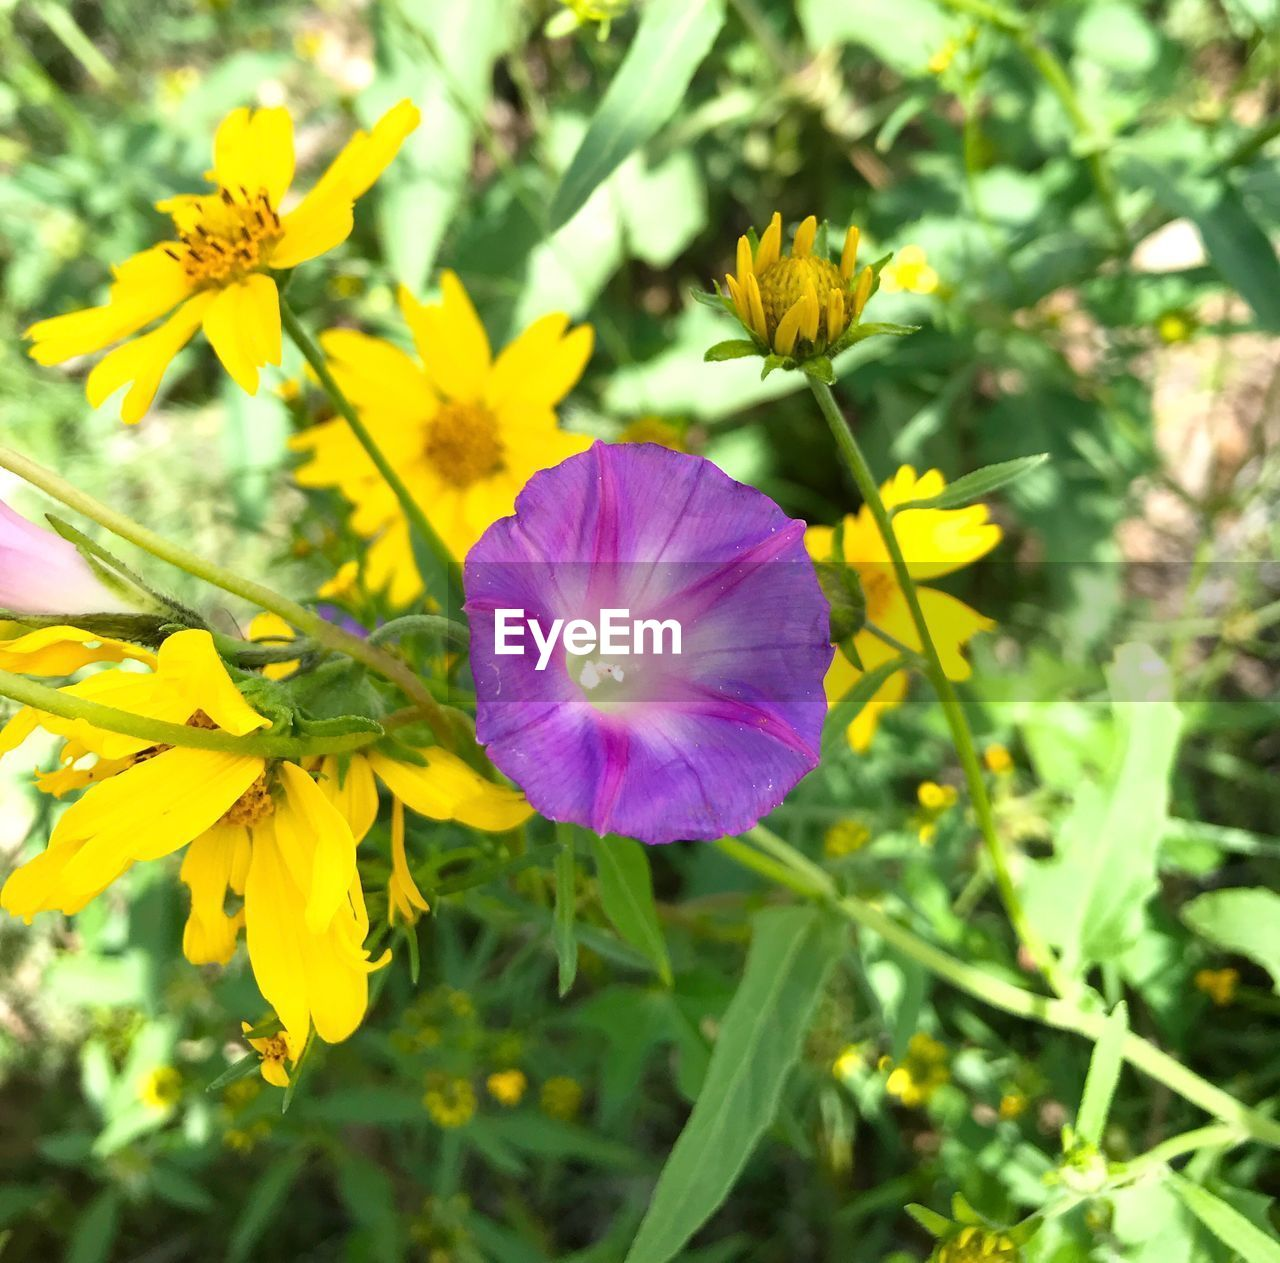 flower, flowering plant, freshness, plant, fragility, vulnerability, beauty in nature, petal, growth, inflorescence, flower head, close-up, nature, yellow, purple, day, no people, focus on foreground, selective focus, botany